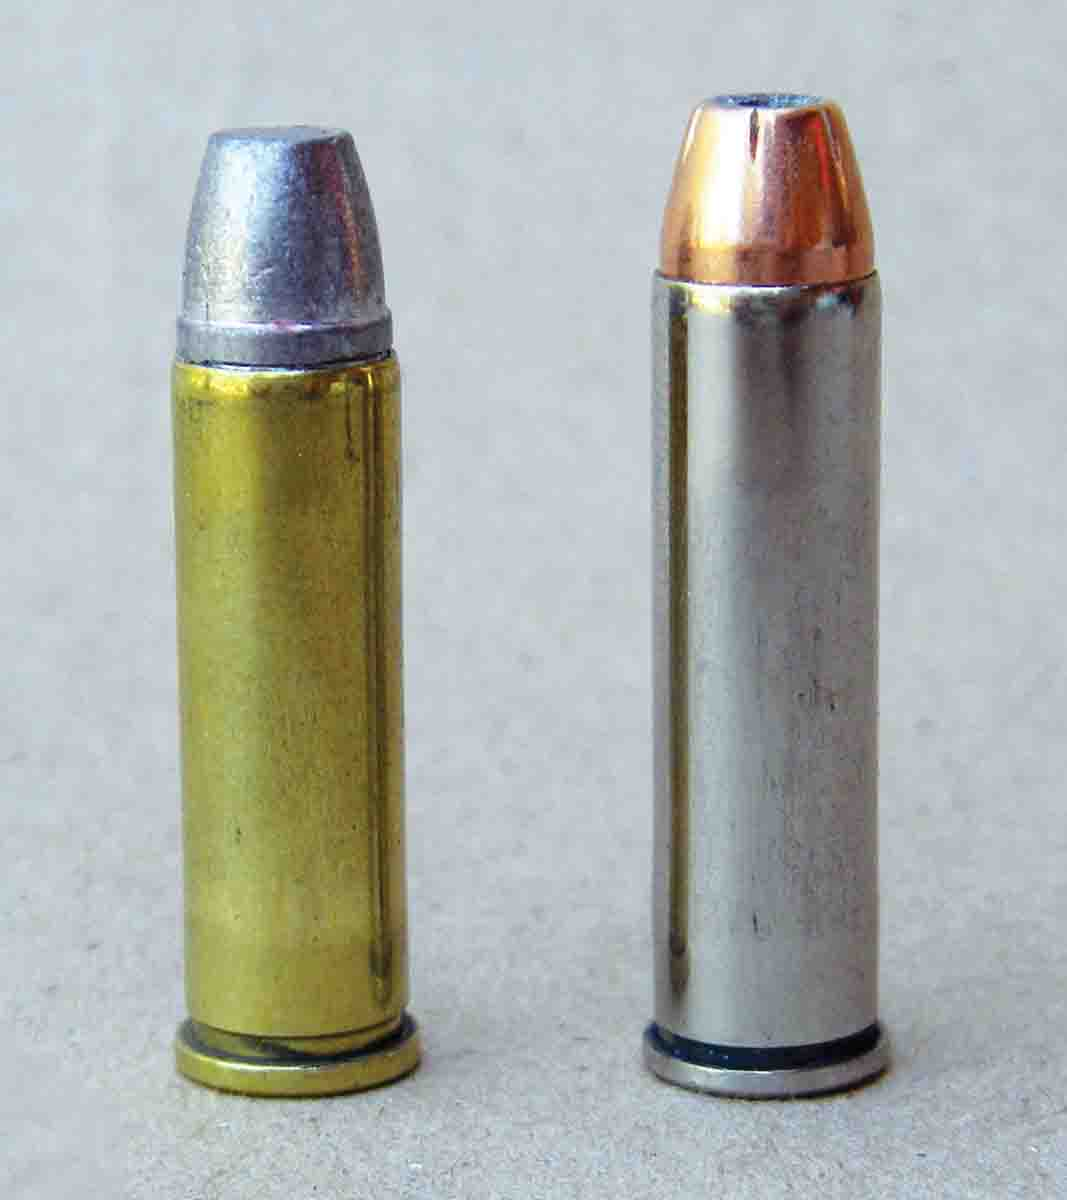 The .327 Federal Magnum (right) is the offspring of the .32 H&R Magnum (left).